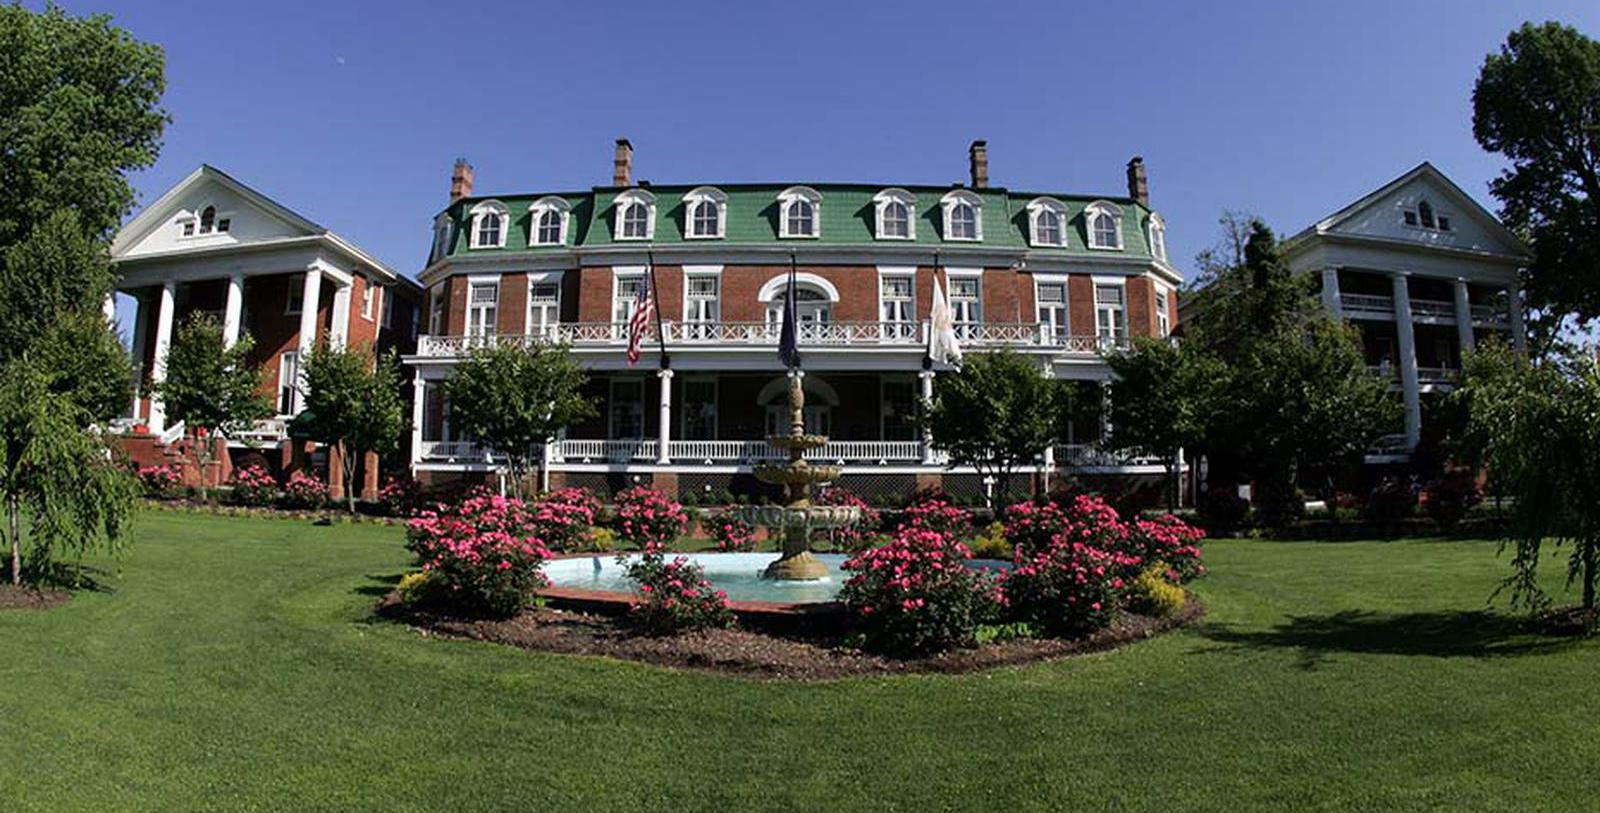 Image of Hotel Exterior The Martha Washington Hotel & Spa, 1832, Member of Historic Hotels of America, in Abingdon, Virginia, Overview